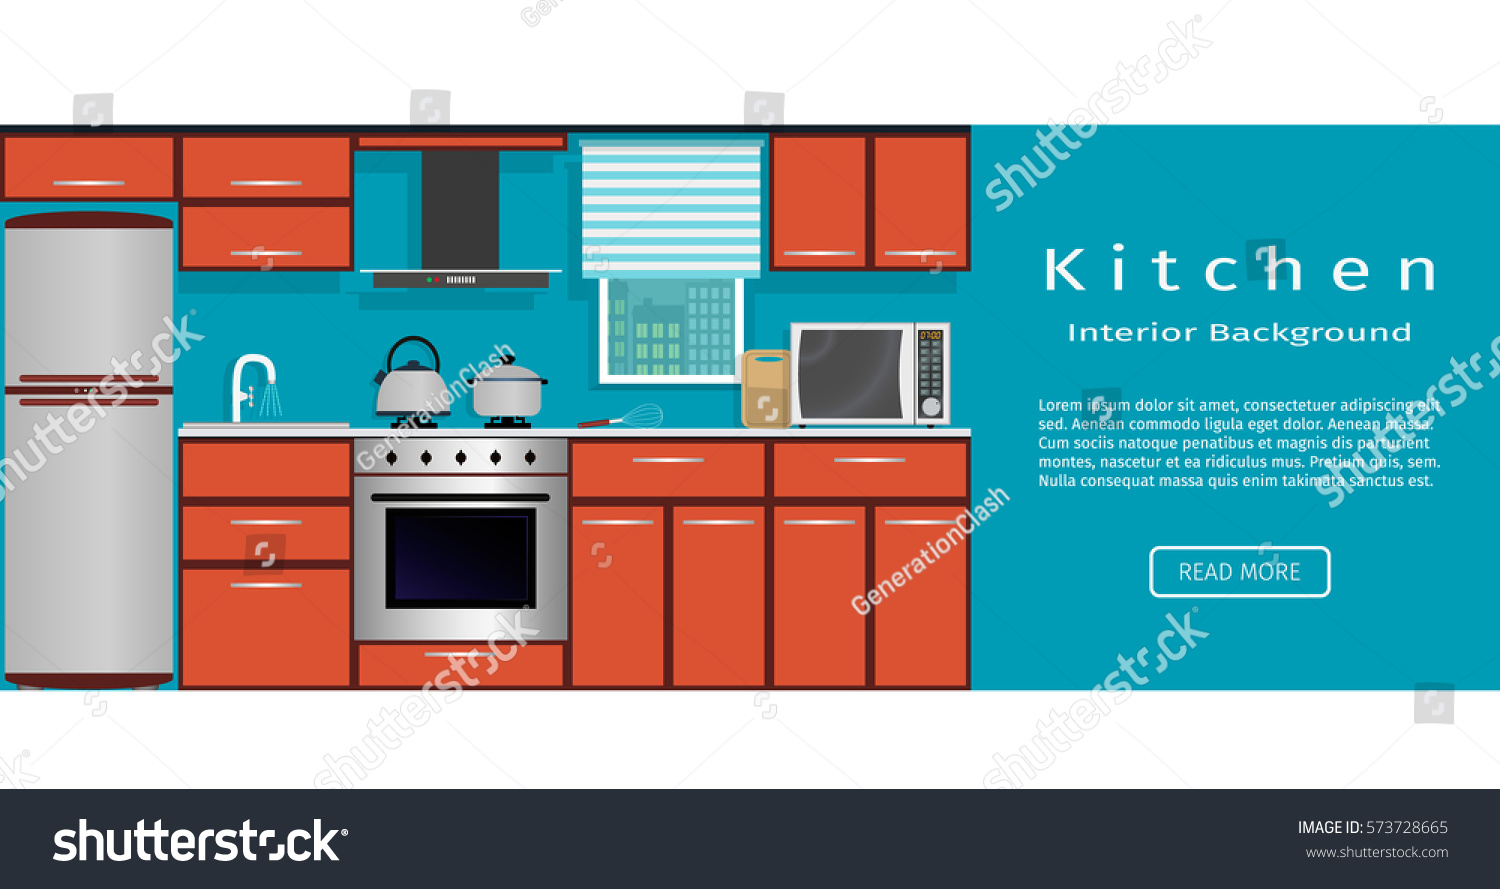 kitchen web design. Kitchen interior banner for your web design  Housewife workplace organization Flat vector illustration Interior Banner Your Web Design Stock Vector 573728665